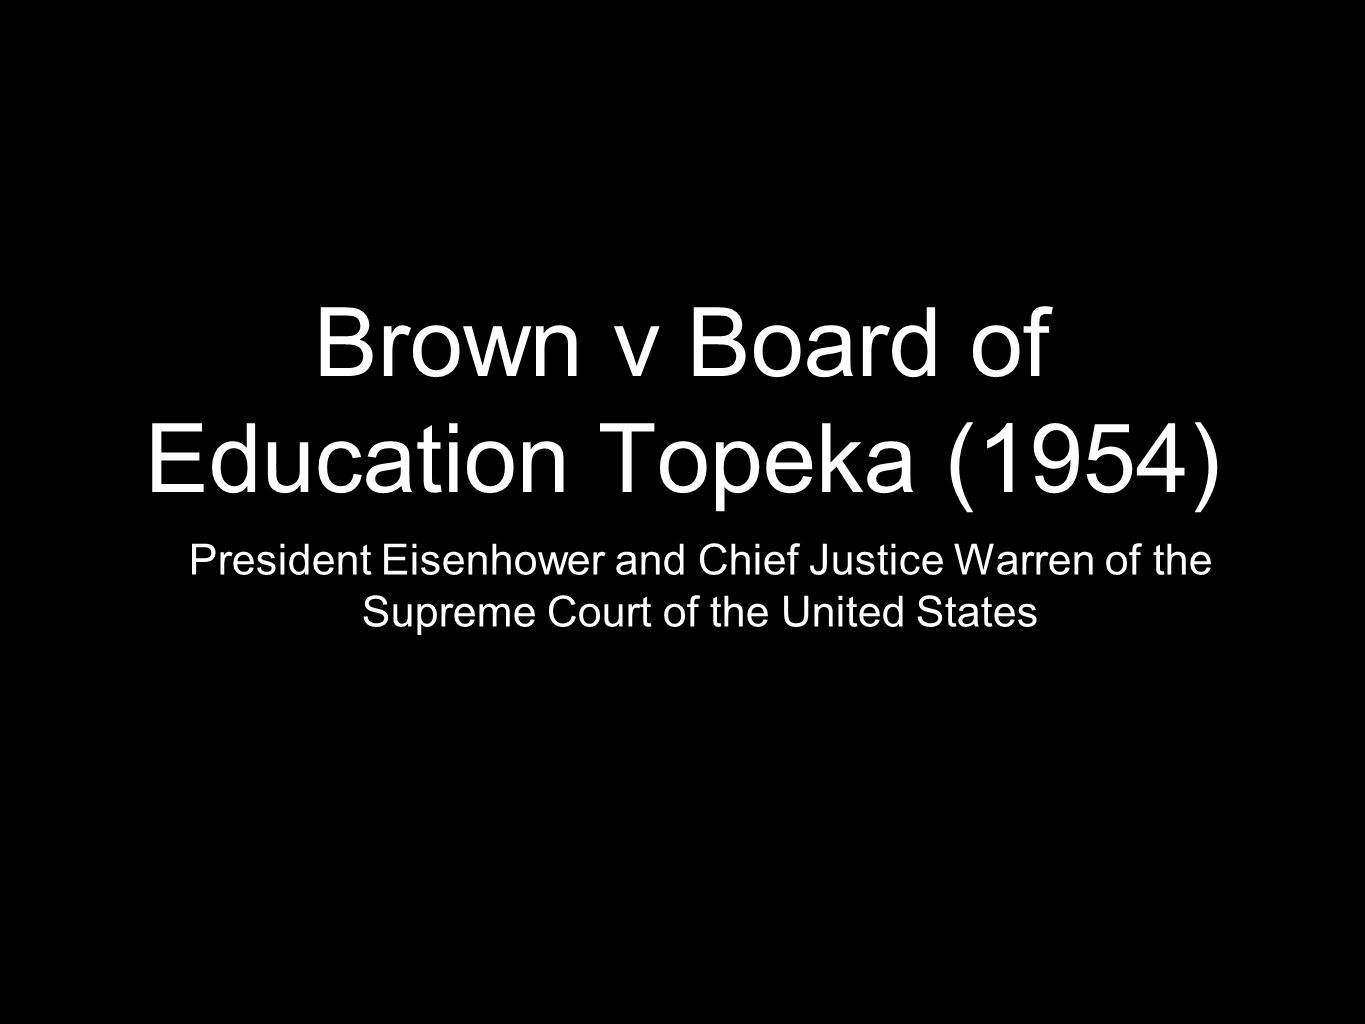 Brown v Board of Education Topeka (1954)